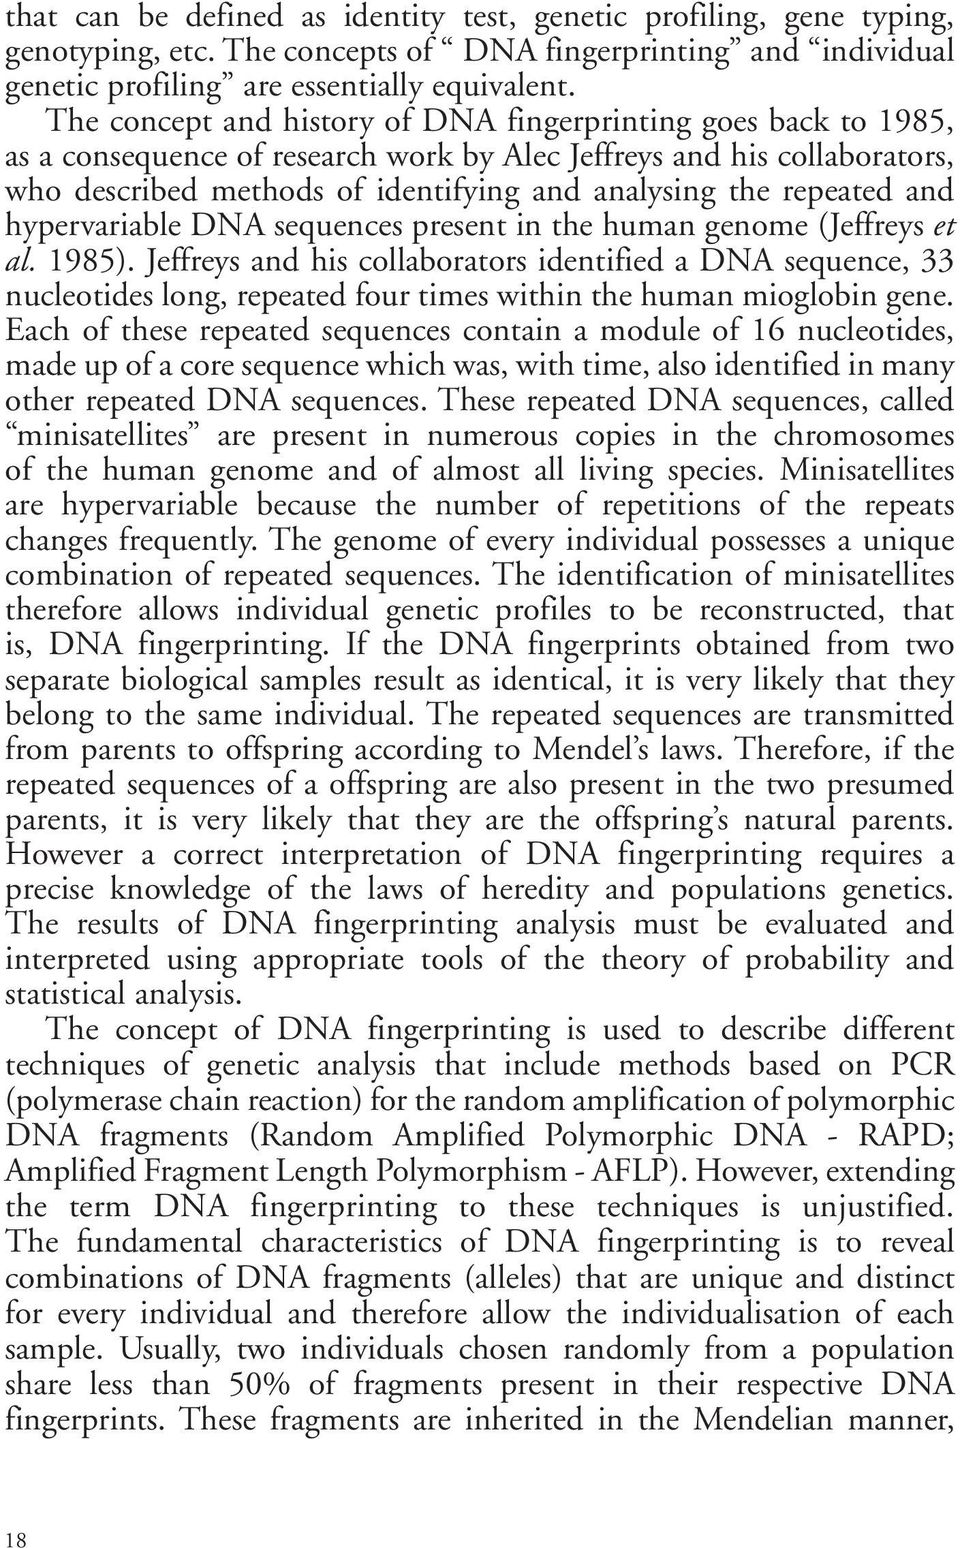 repeated and hypervariable DNA sequences present in the human genome (Jeffreys et al. 1985).